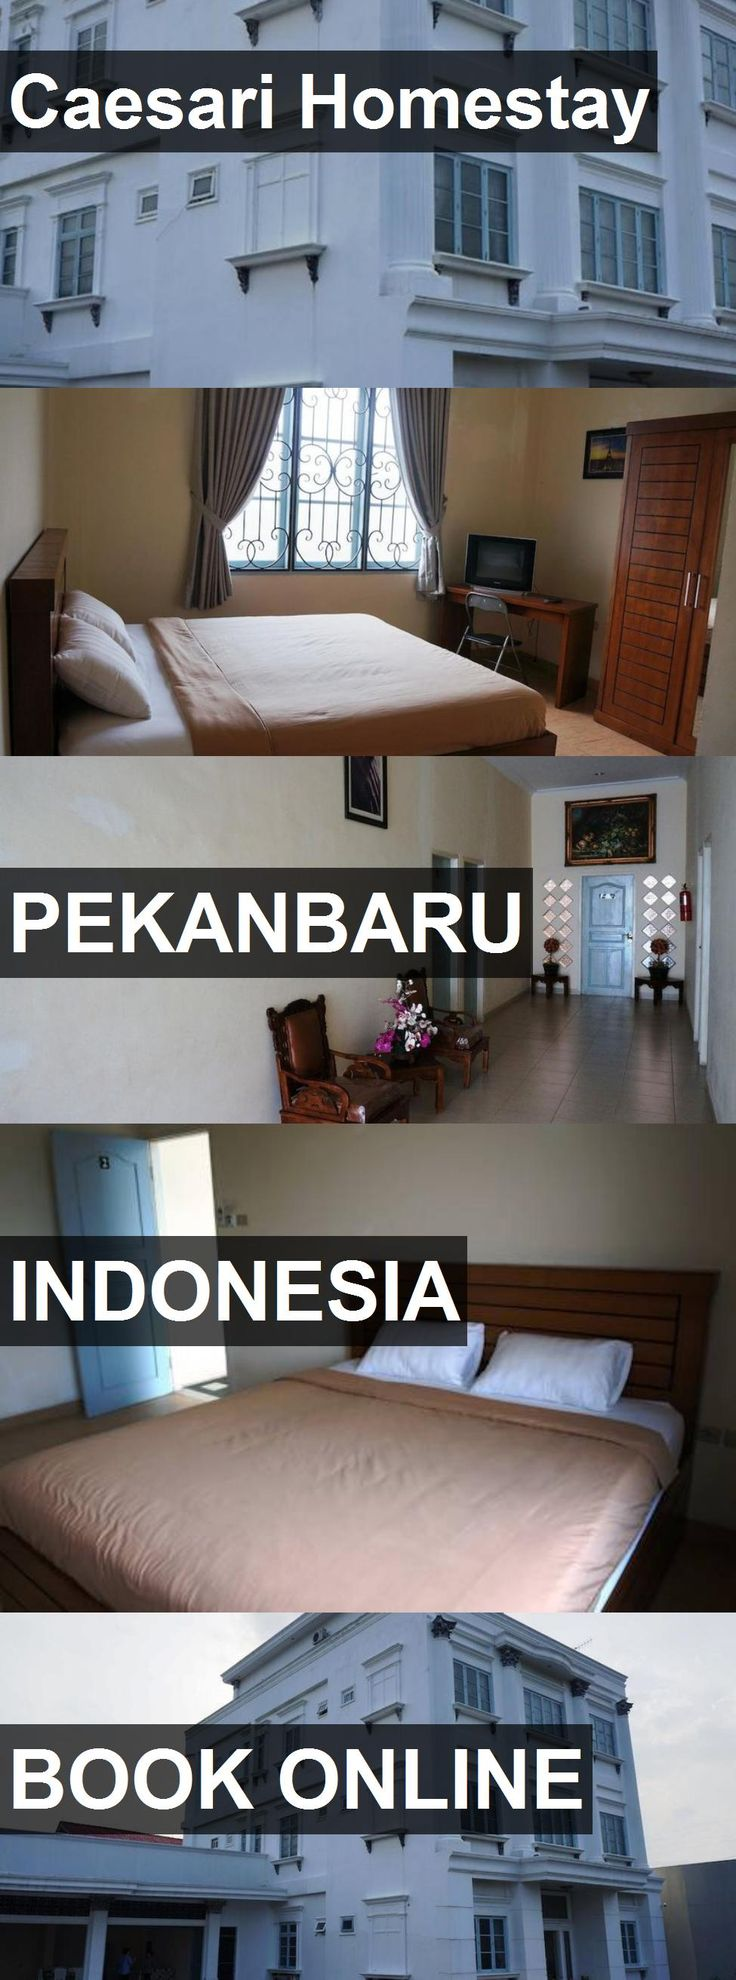 Hotel Caesari Homestay in Pekanbaru, Indonesia. For more information, photos, reviews and best prices please follow the link. #Indonesia #Pekanbaru #travel #vacation #hotel